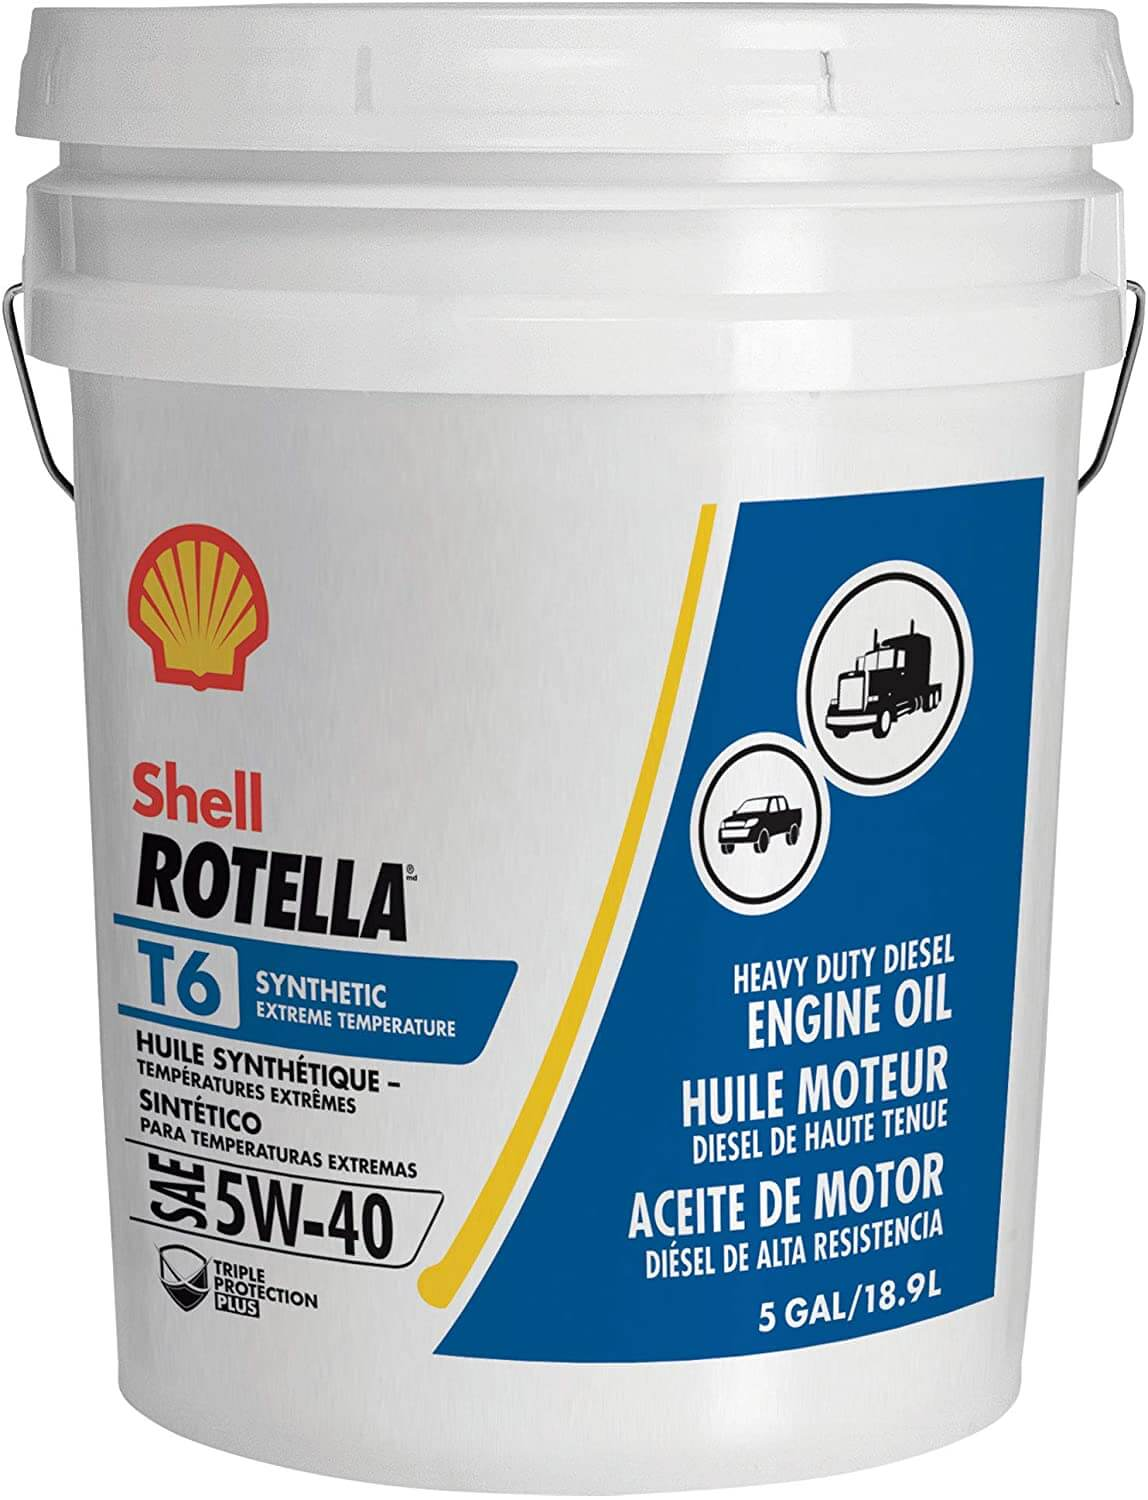 Shell Rotella Oil for 7.3 Powerstroke Diesel